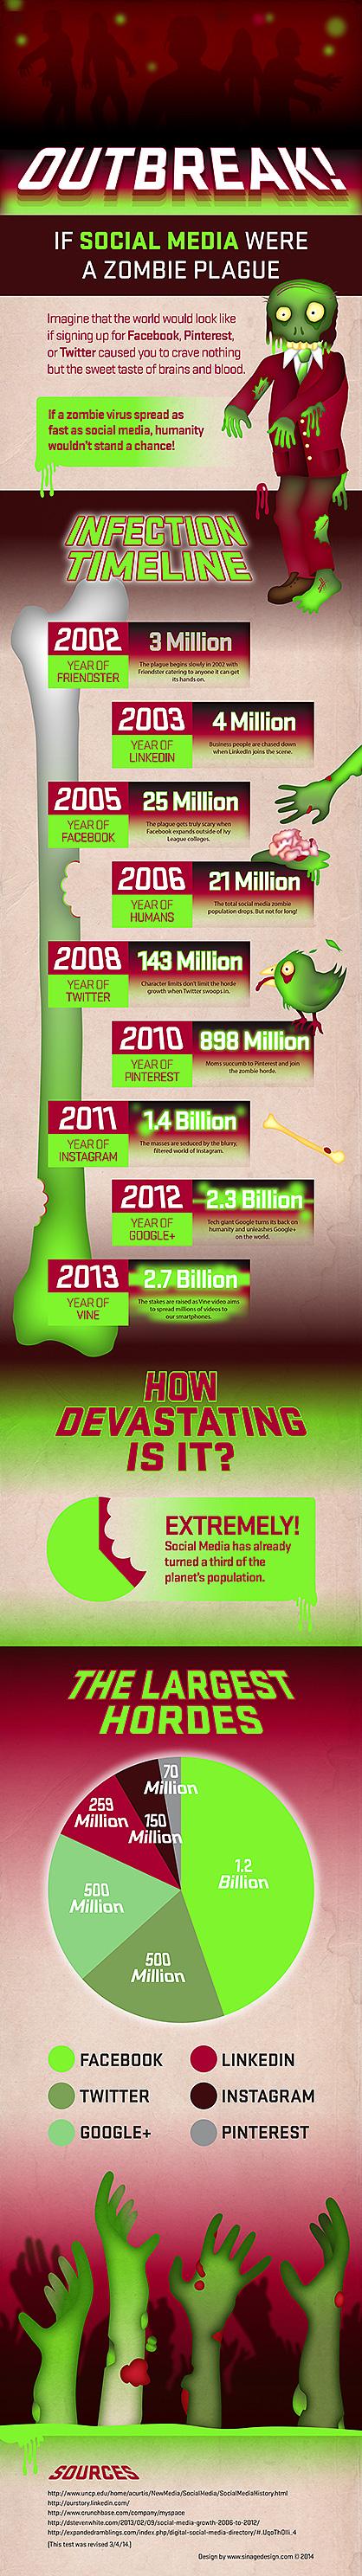 Outbreak! If Social Media were a Zombie Plague Infographic